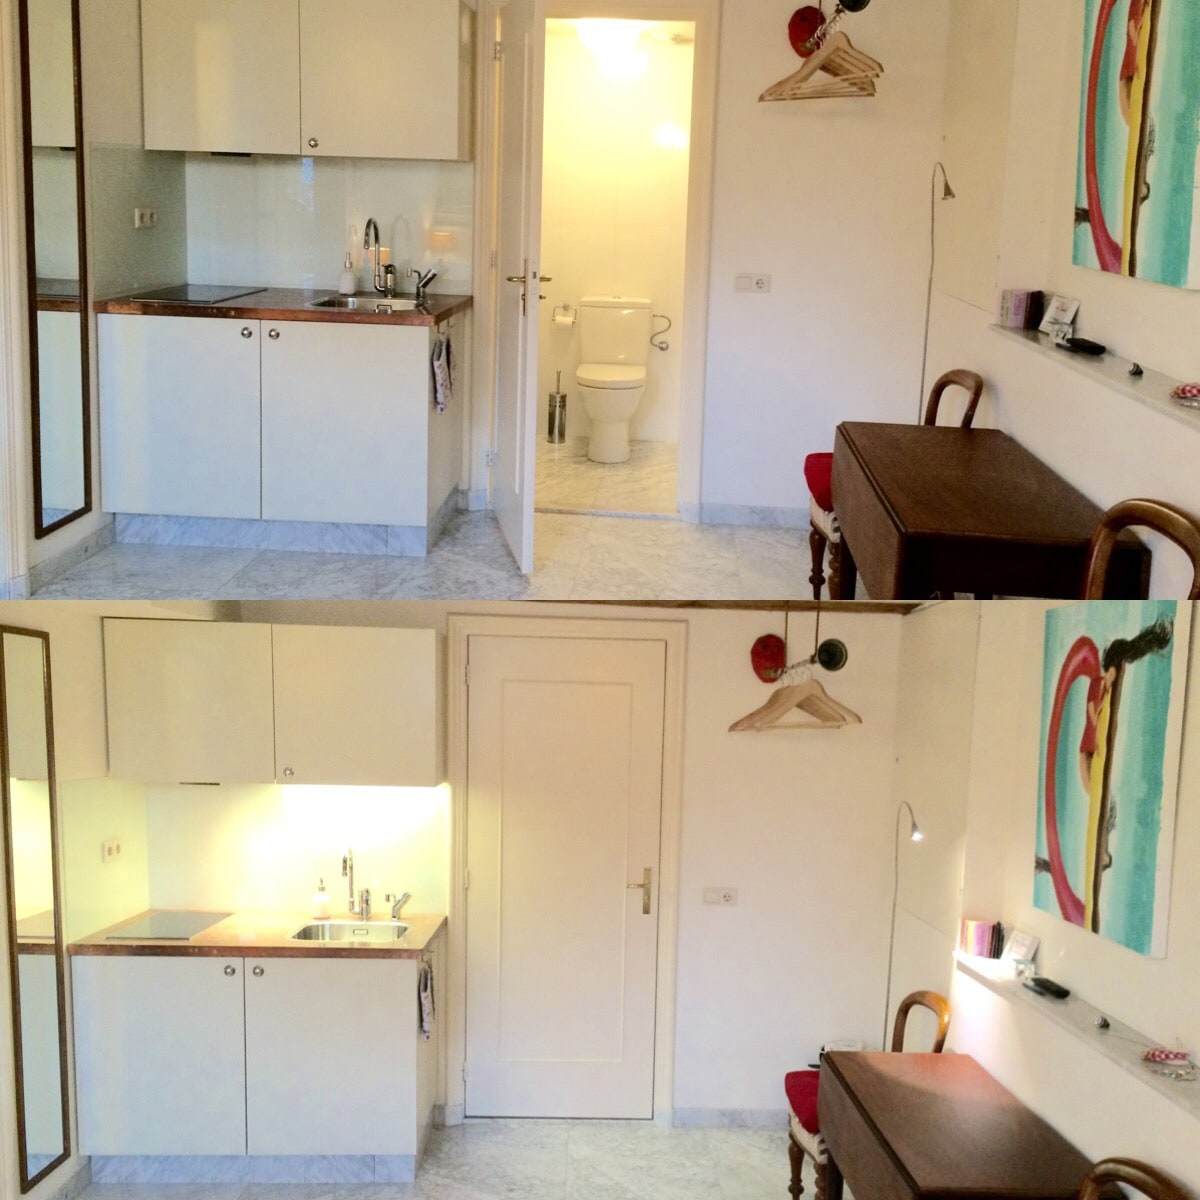 Ensuite bathroom with toilet and shower